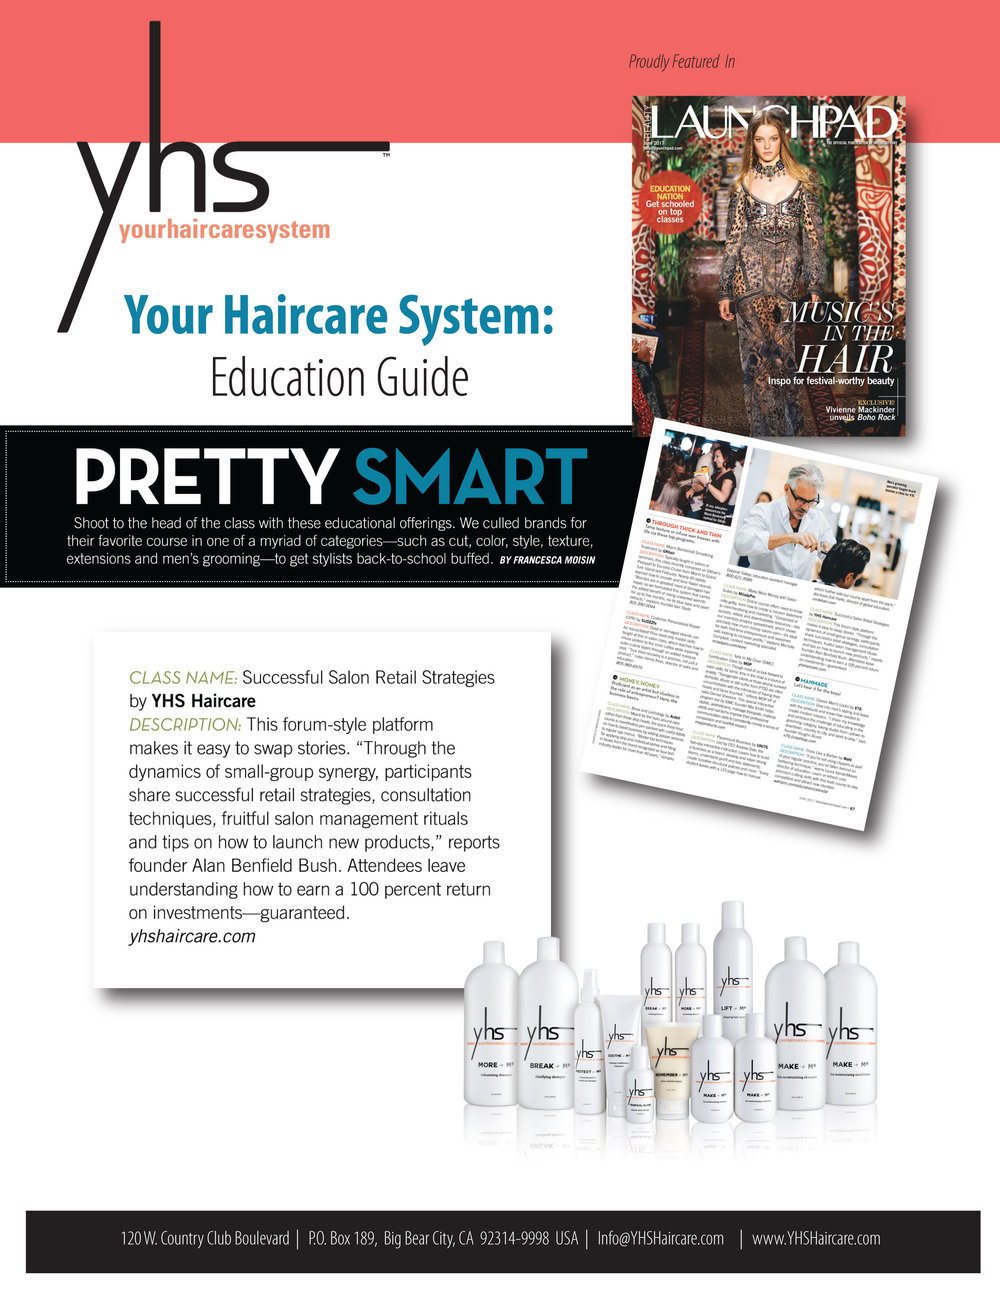 YHS--PRR-Your-Haircare-System--June-2017-Launchpad-Education-1-Jun1,17.jpg